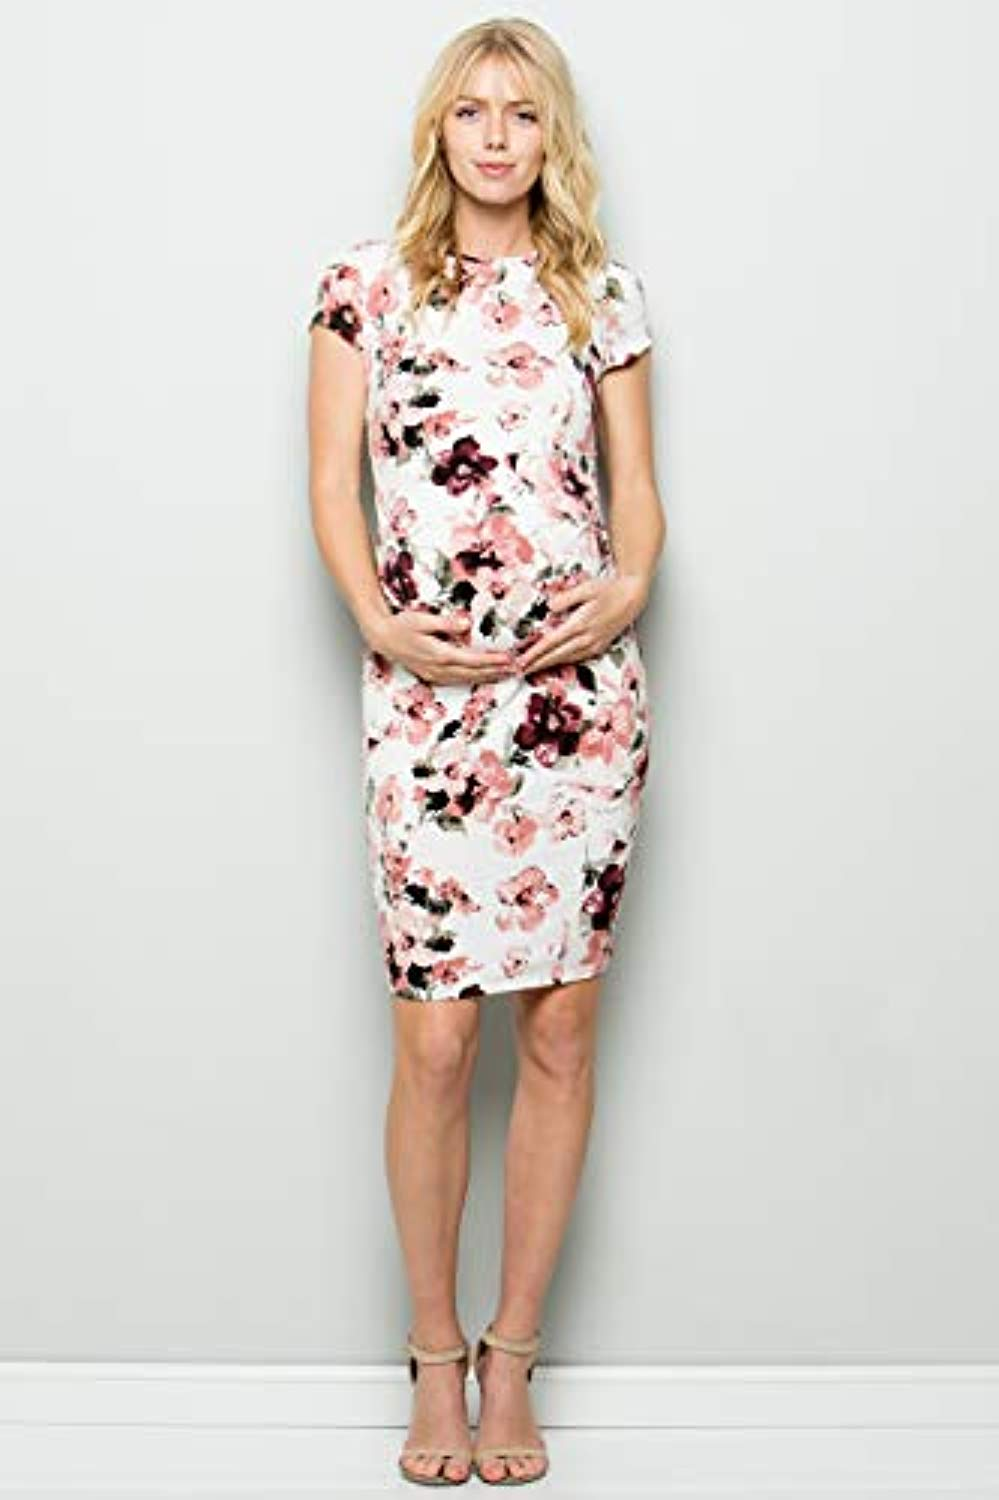 Ivory Floral Maternity Bodycon Dress - Mommylicious